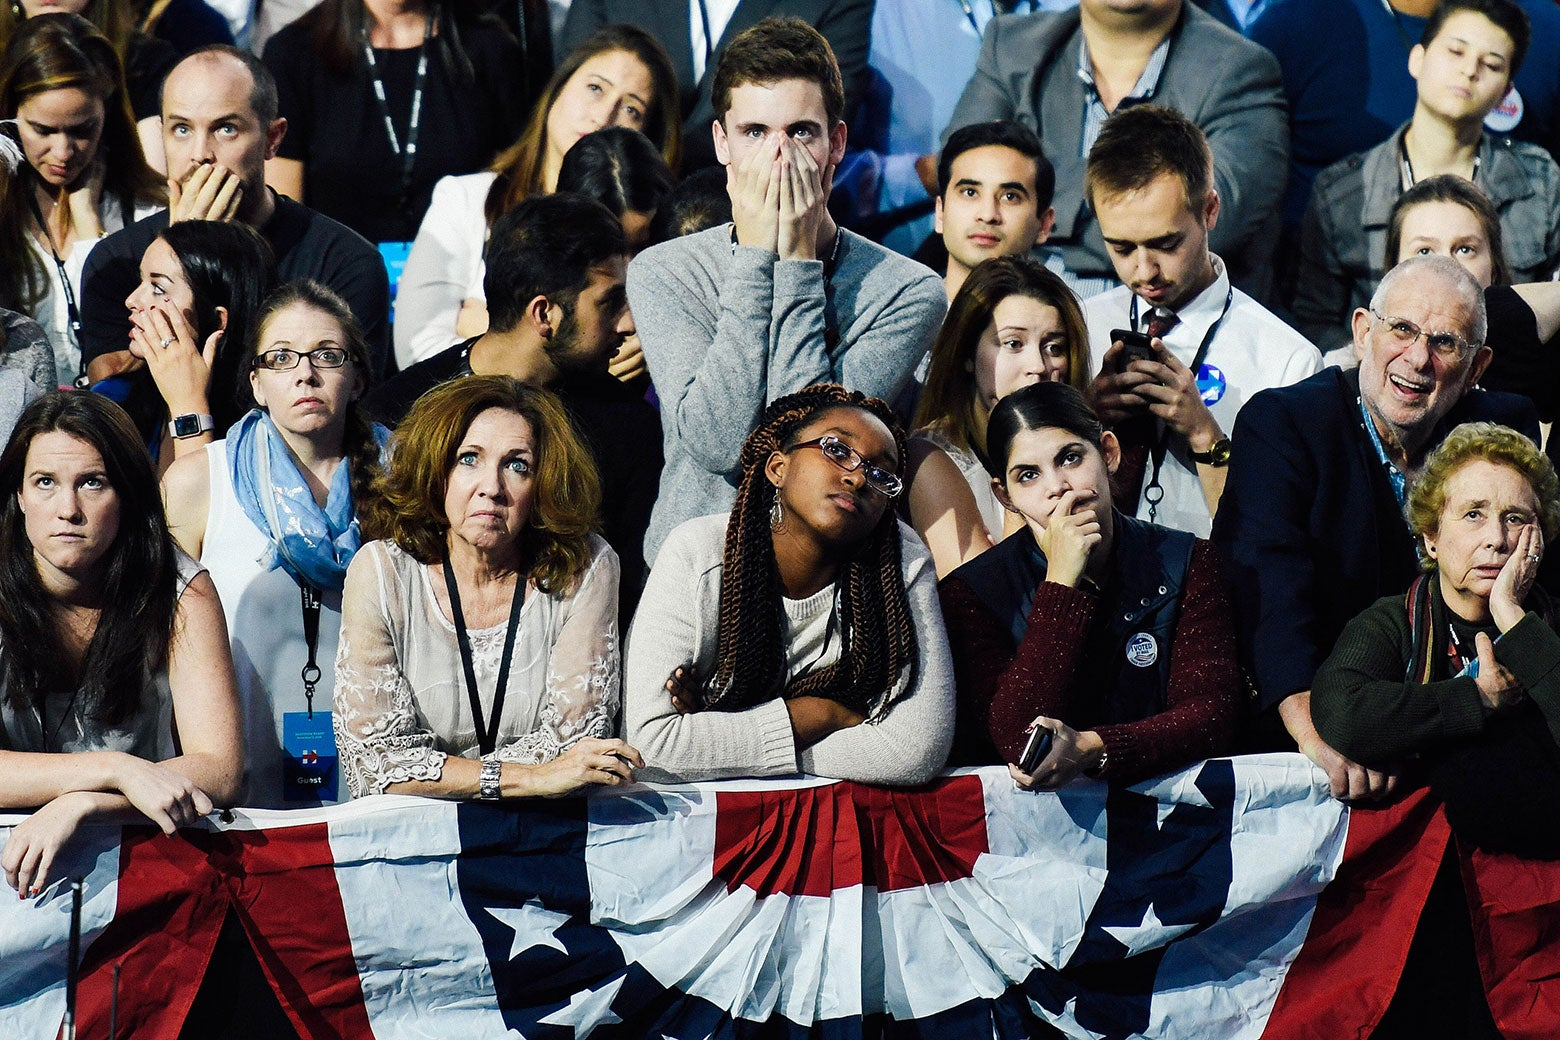 Distraught Hillary Clinton supporters.